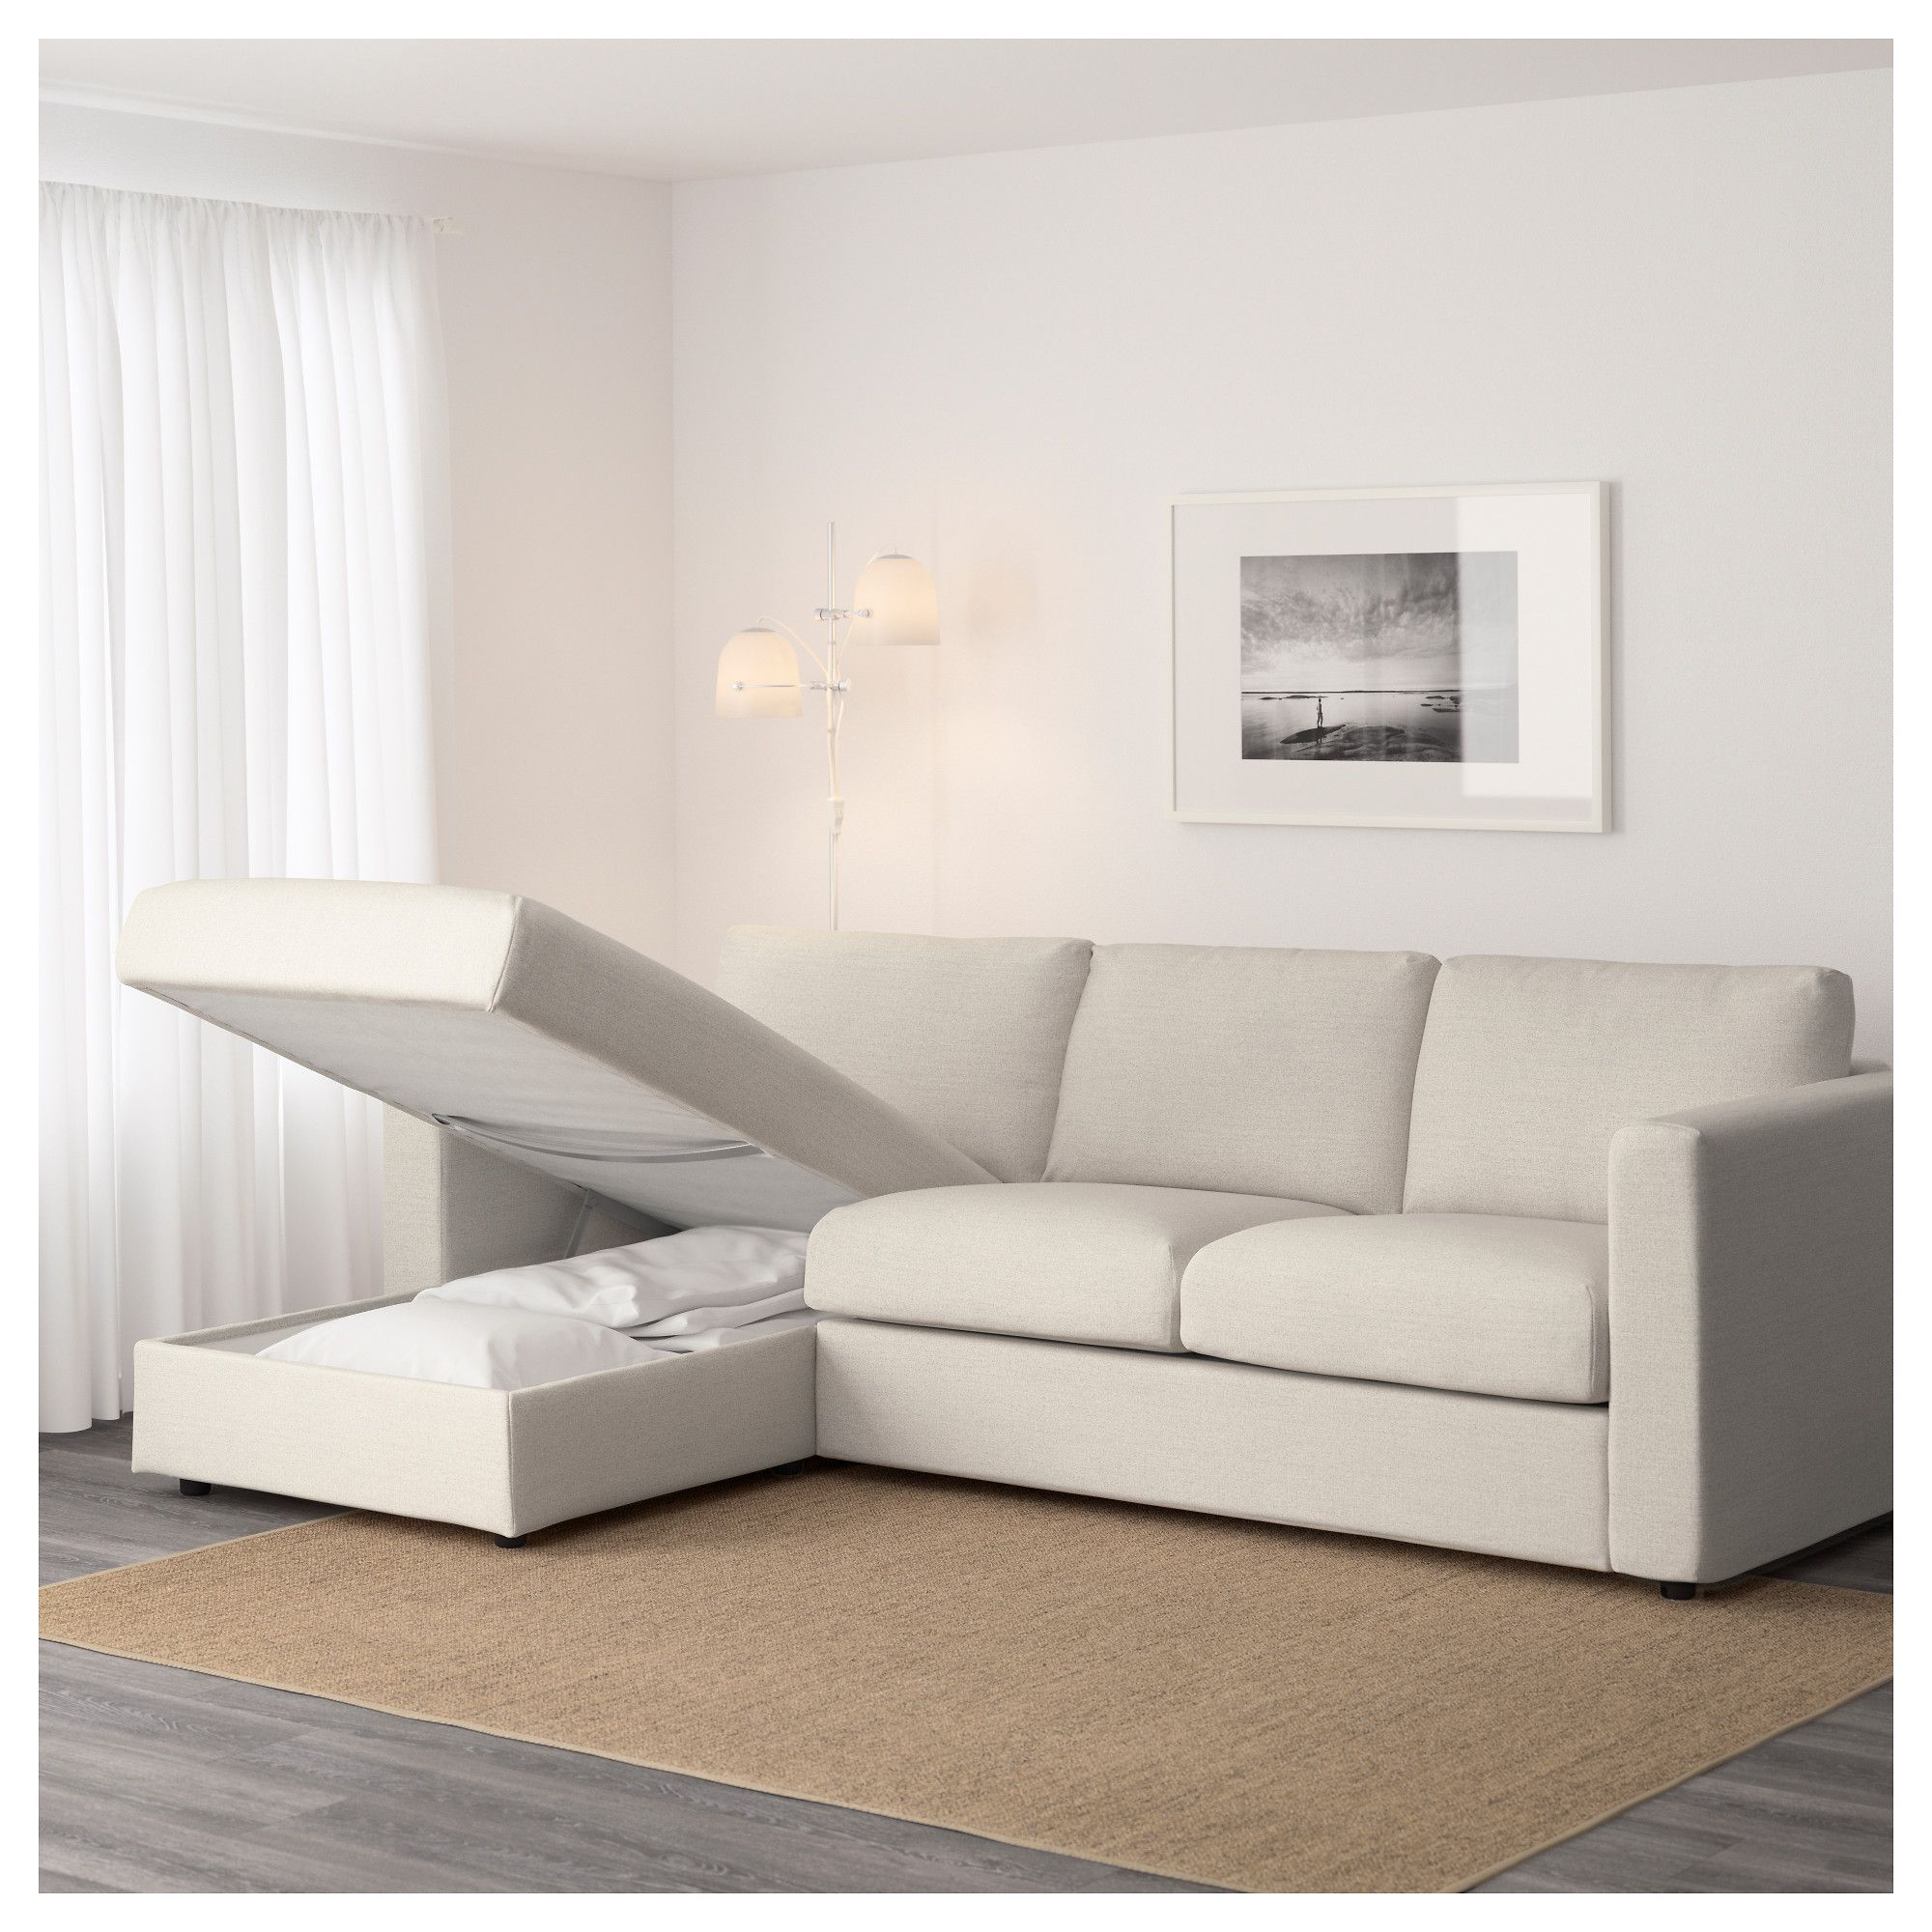 Furniture And Home Furnishings Hipster Home Decor On